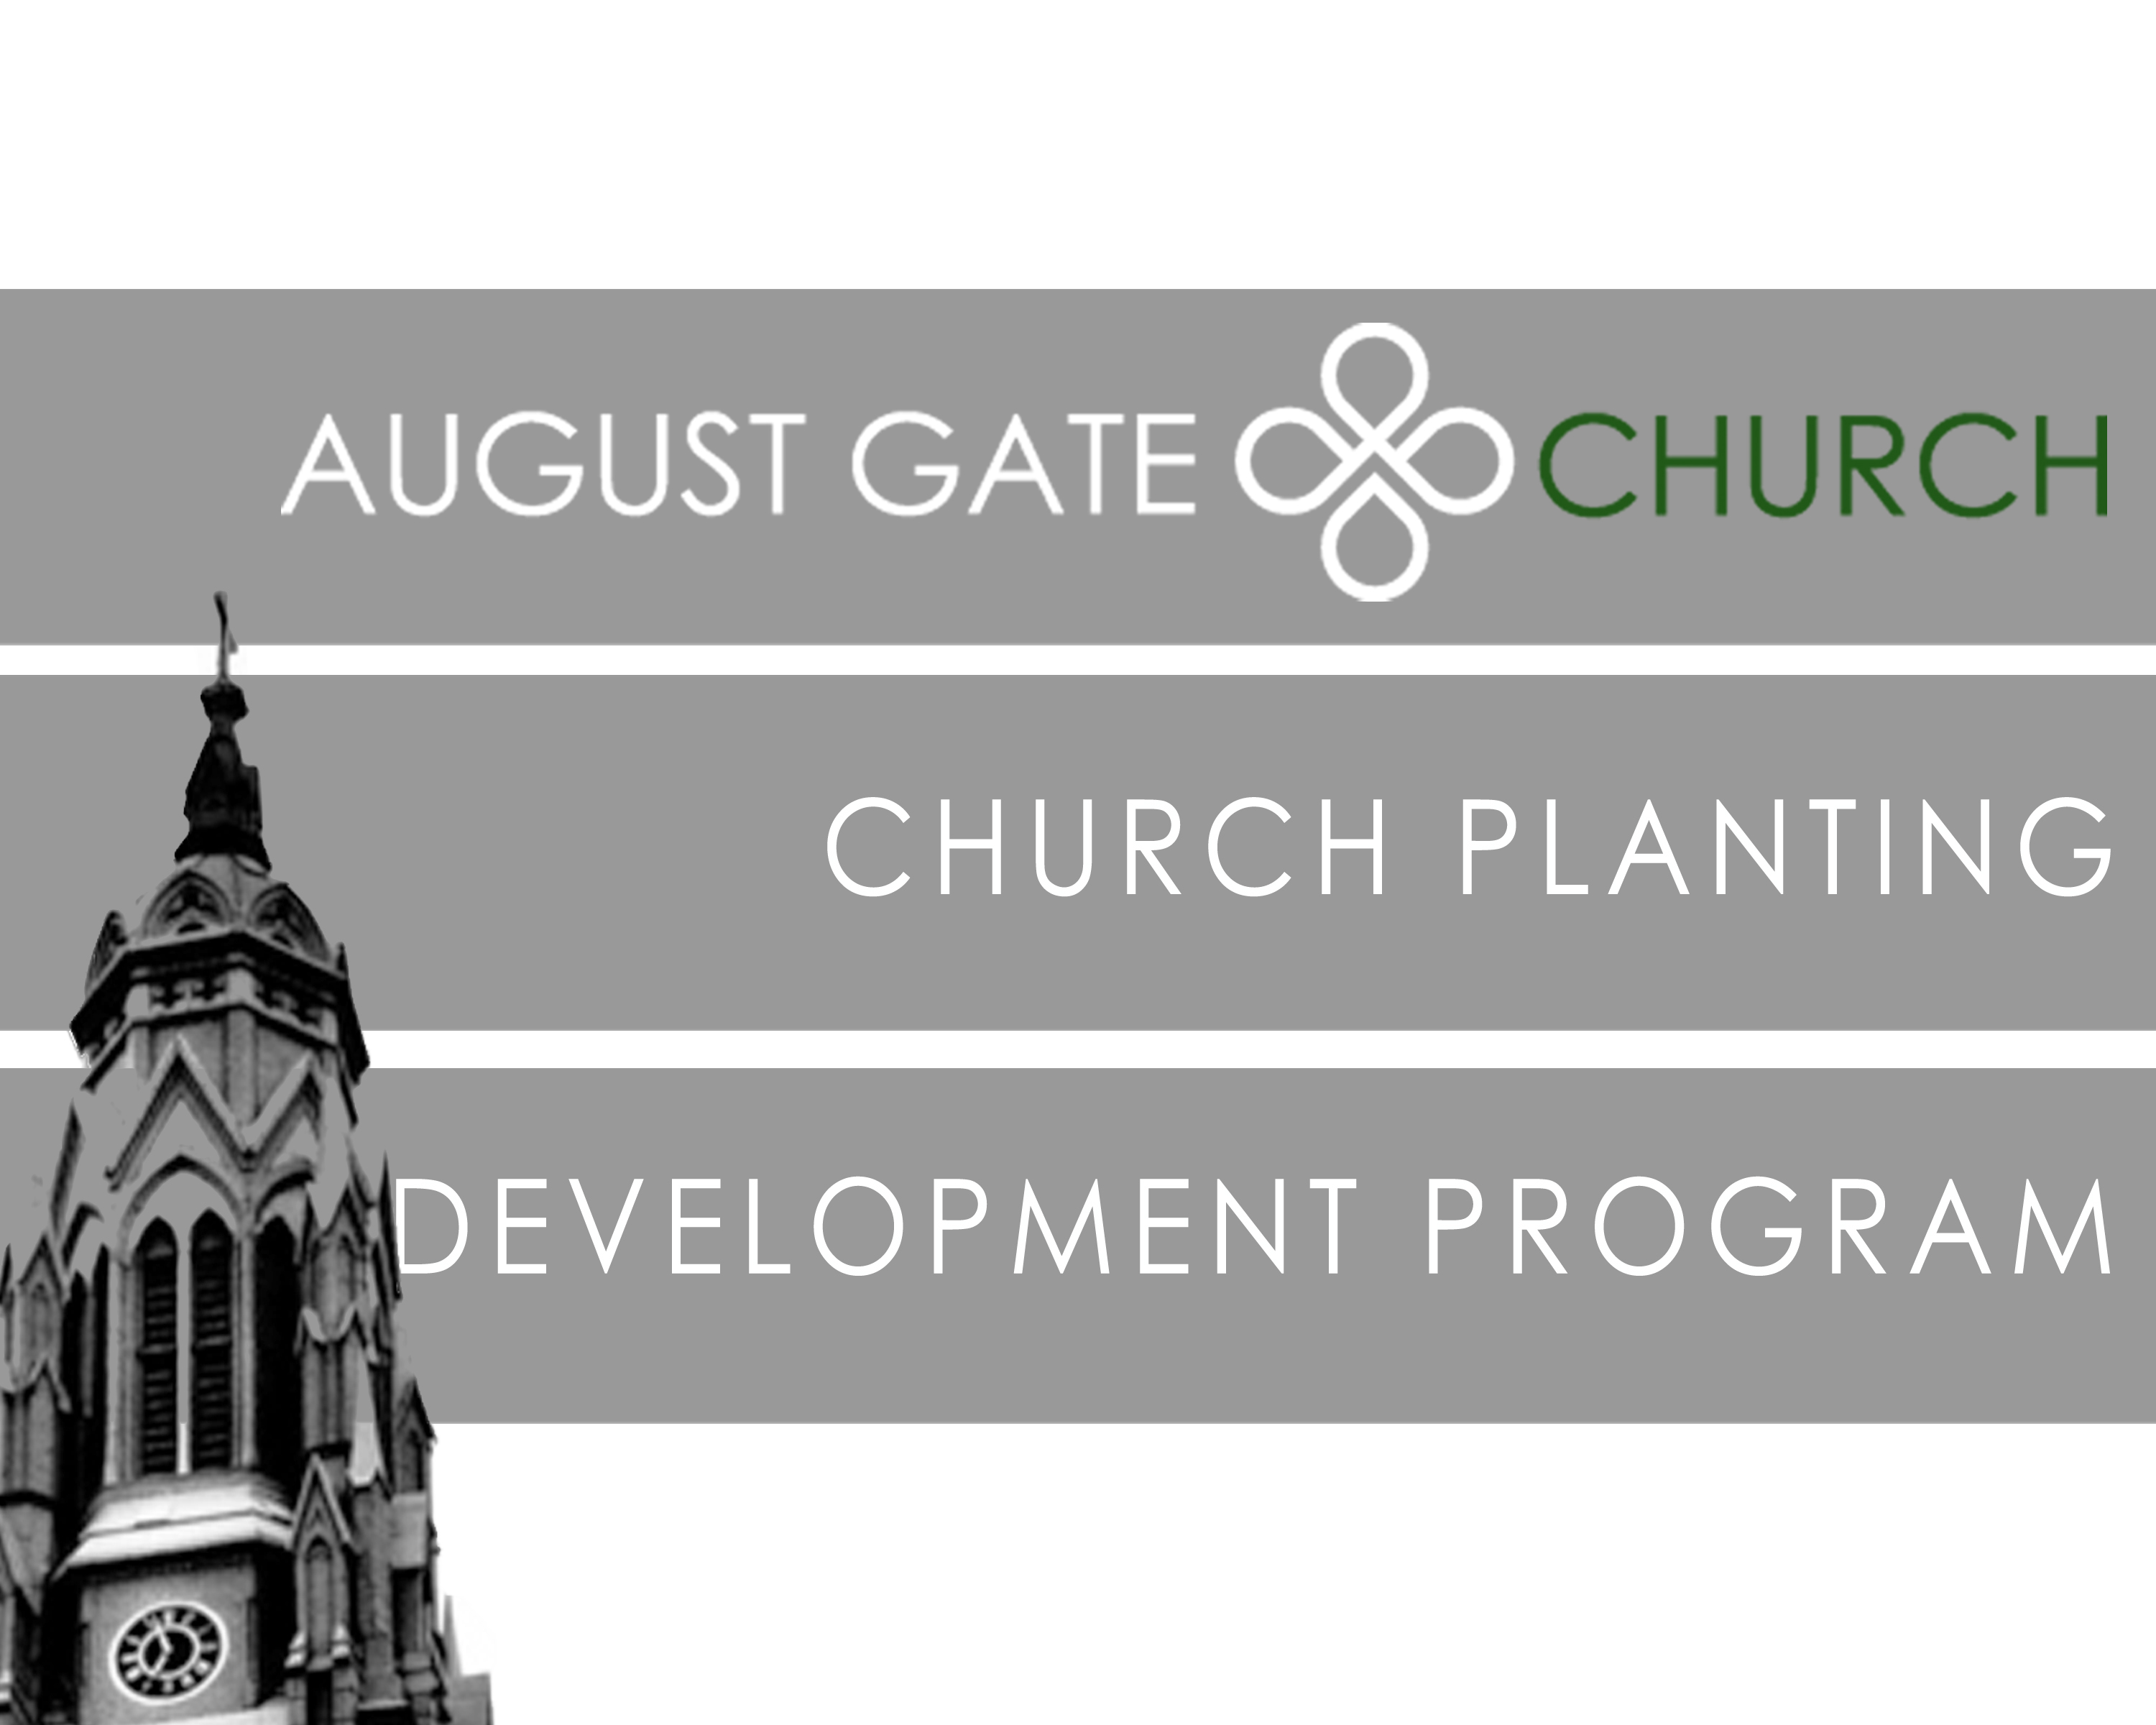 Join Us as We Plant More Churches